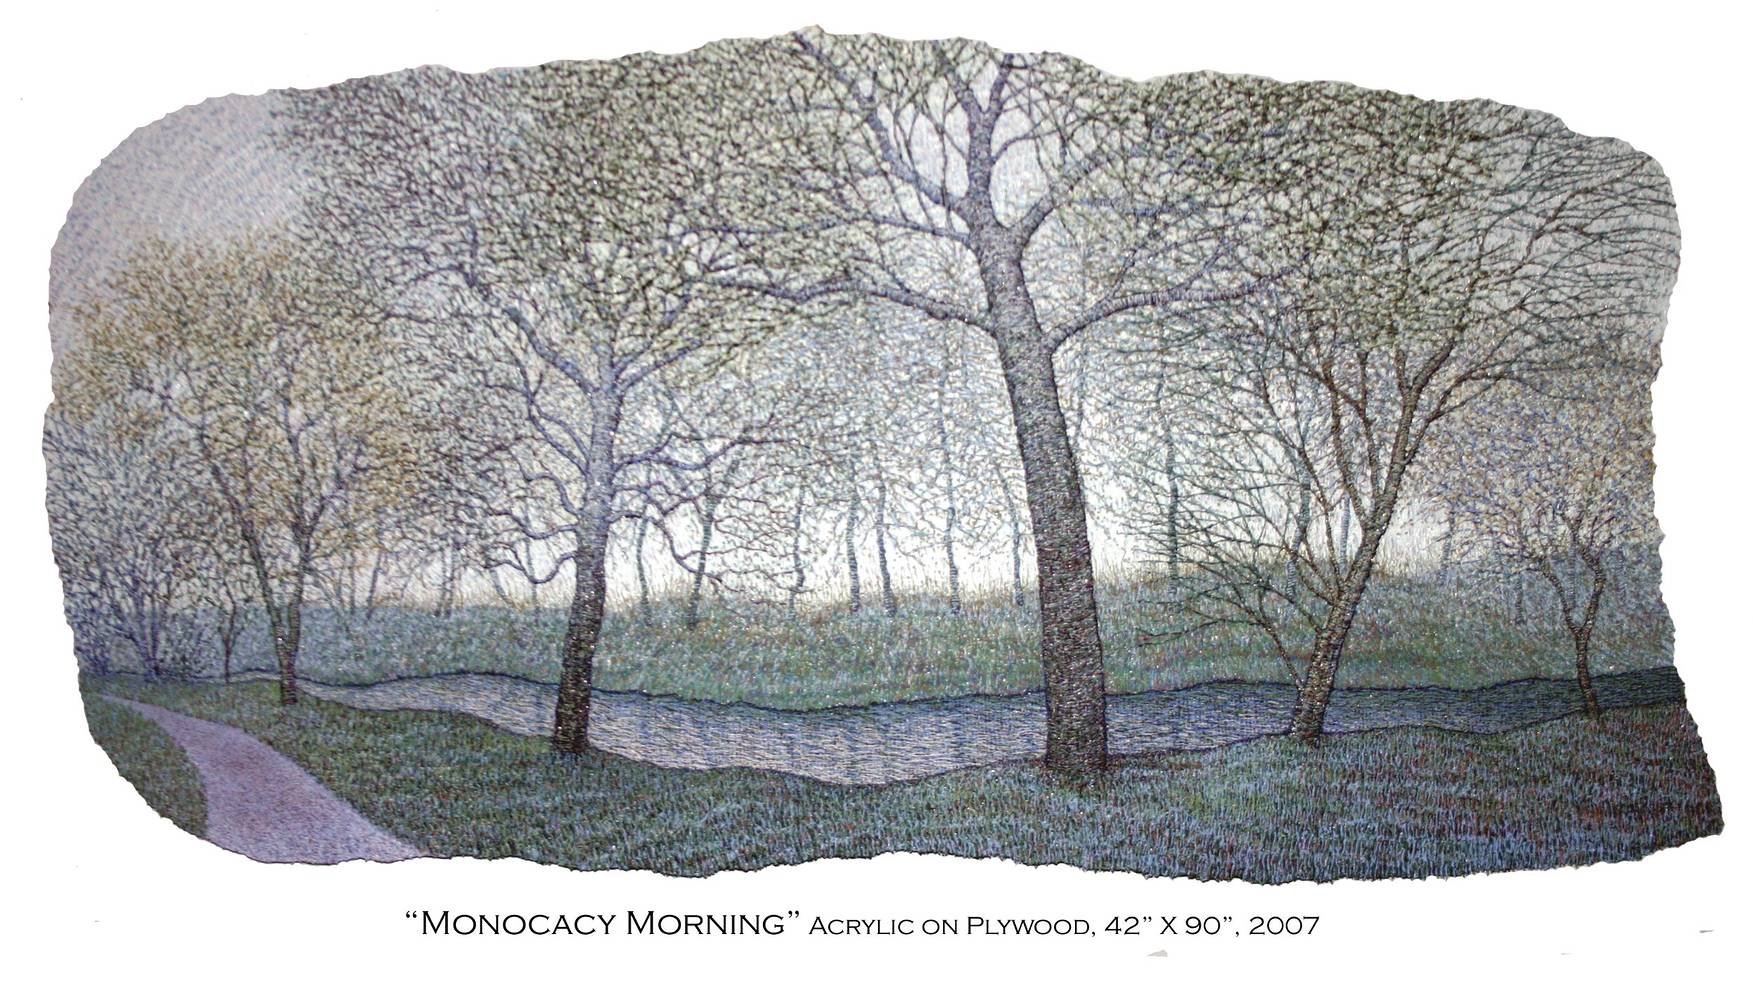 Monocacy Morning, 2007 by Douglas Moulden